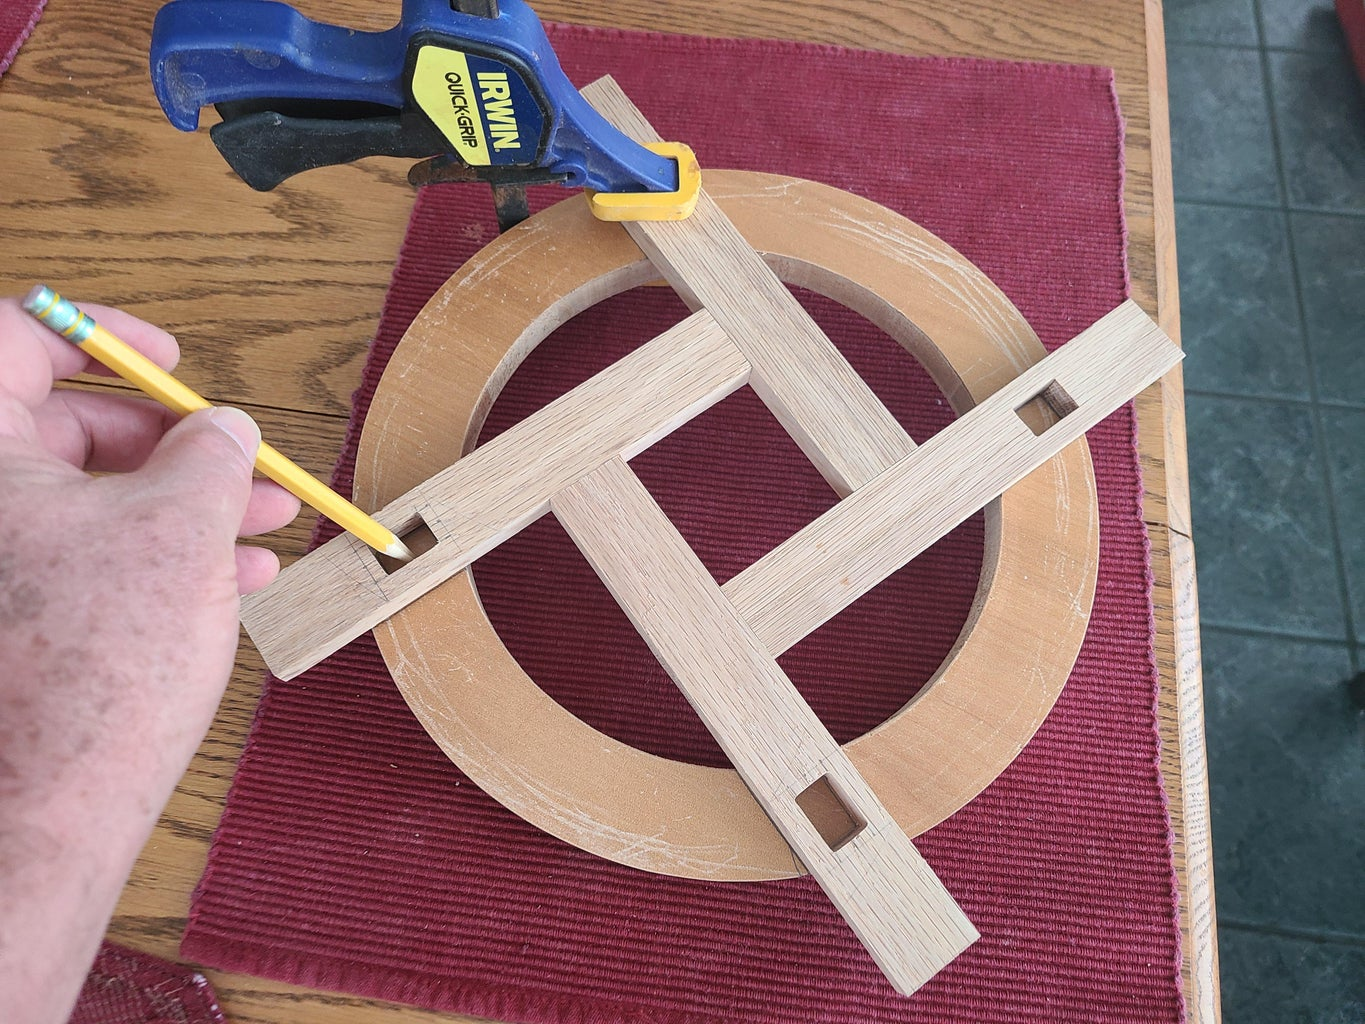 Top Piece Mortise